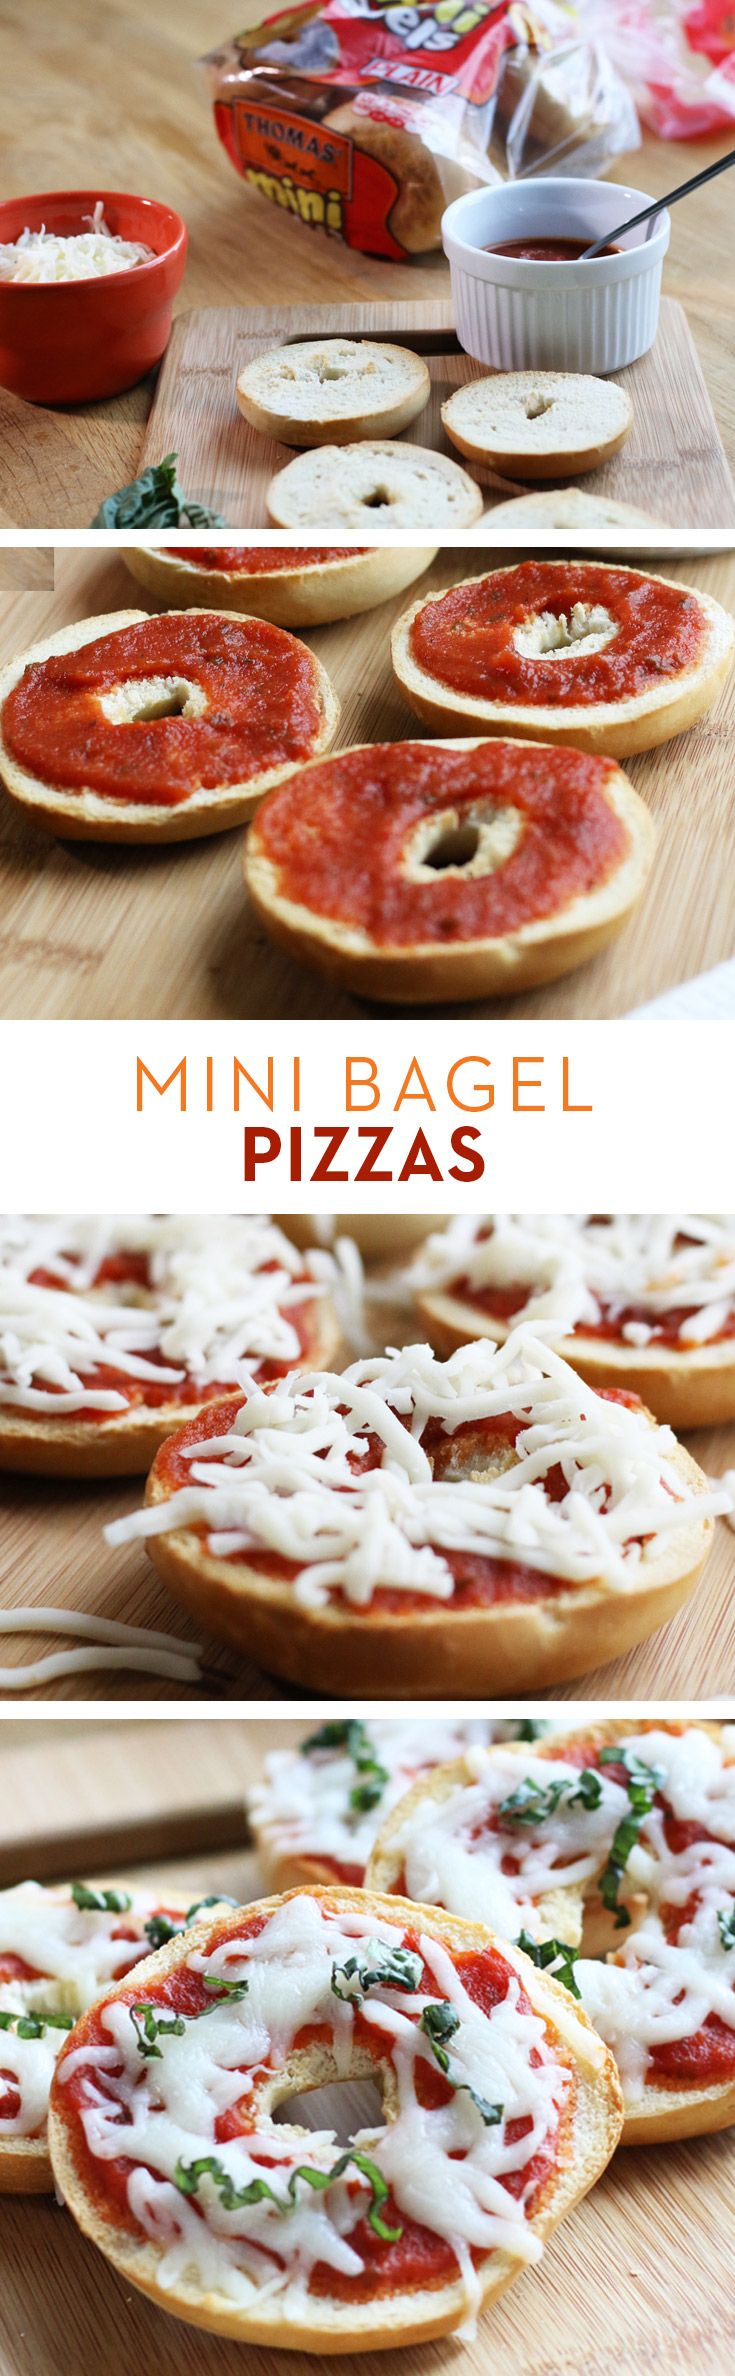 Mini Bagel Pizzas: Top Thomas' Mini Bagels with your favorite pizza sauce, Mozzarella and fresh basil for irresistible, bite-size snacking.